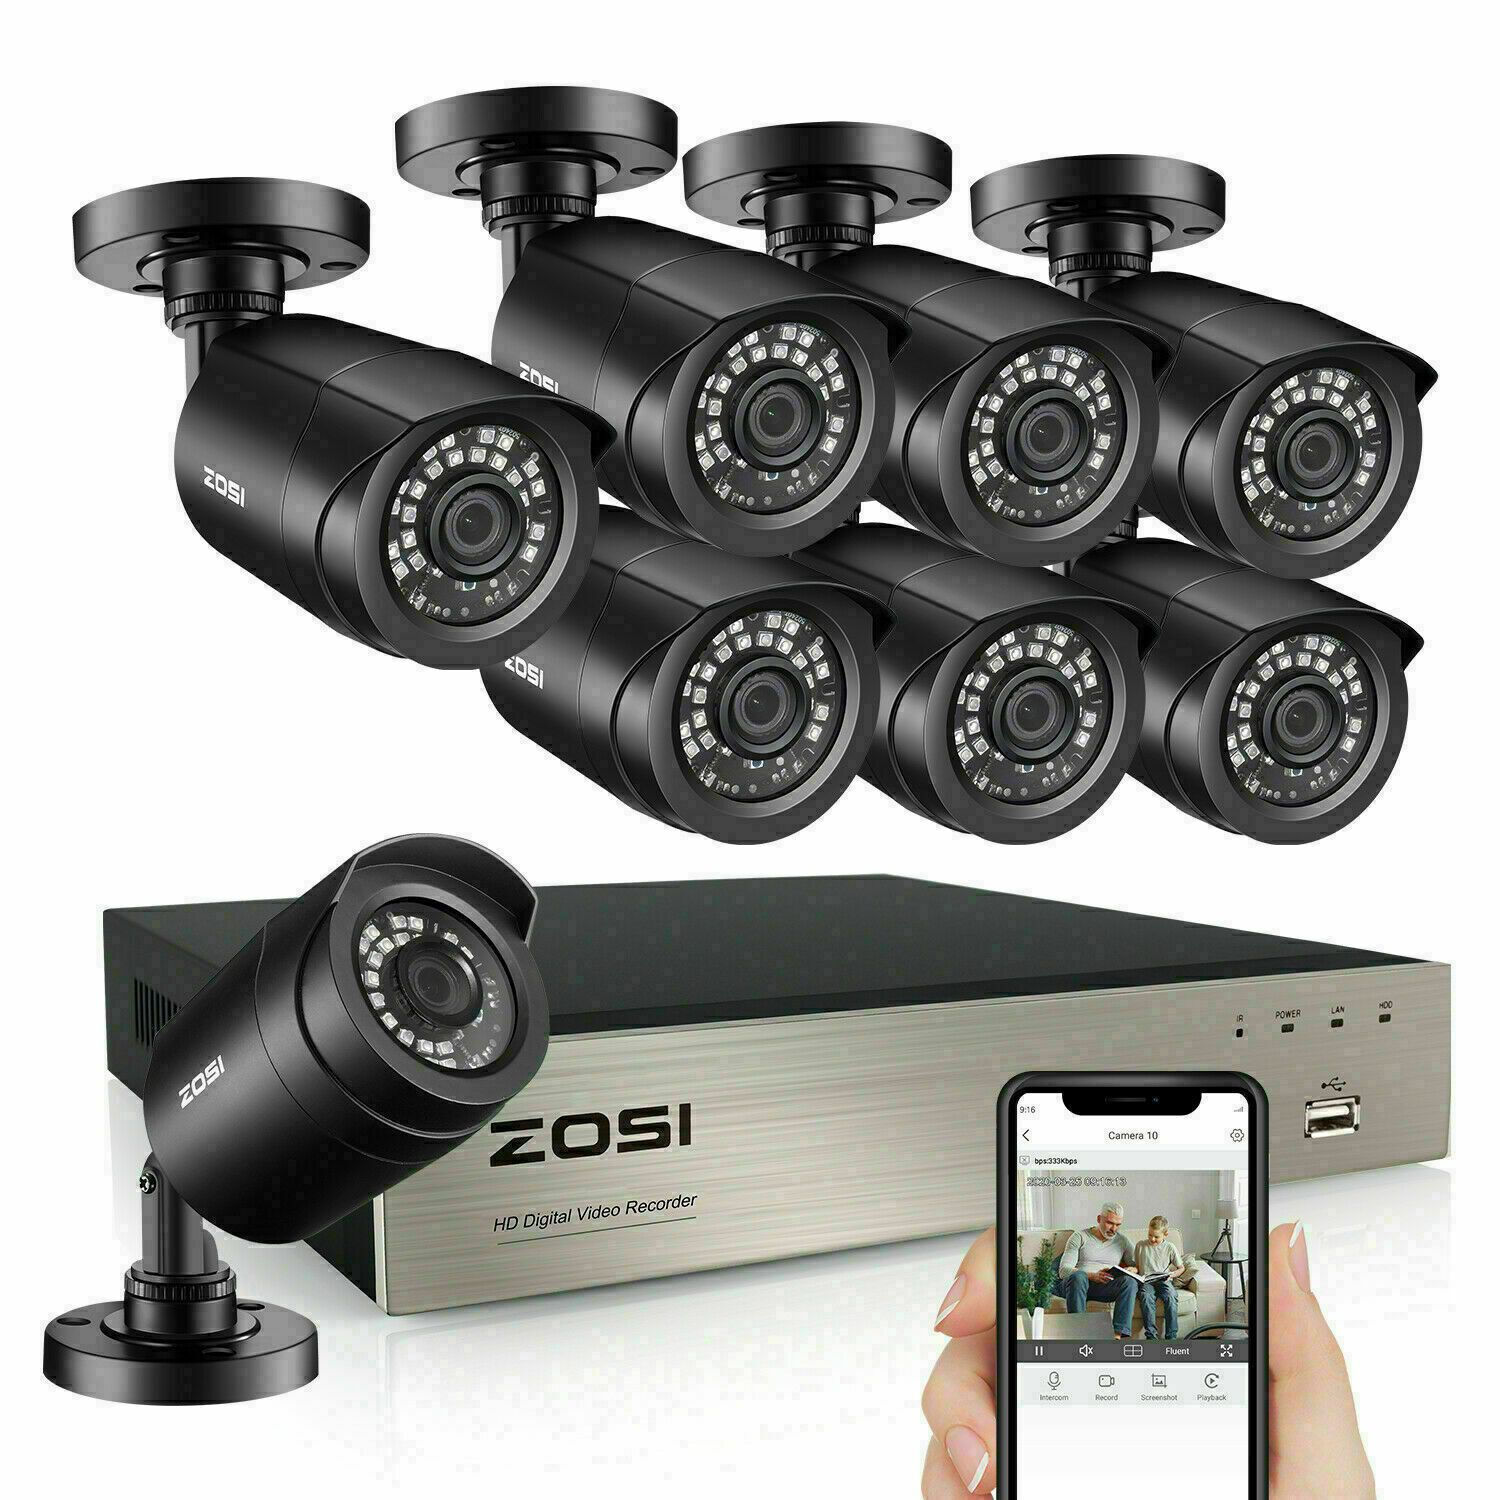 Zosi 8ch 5mp Lite Dvr 1080p Outdoor Cctv Security Camera System Kit Night Vision Ebay Security Cameras For Home Cctv Security Cameras Security Camera System